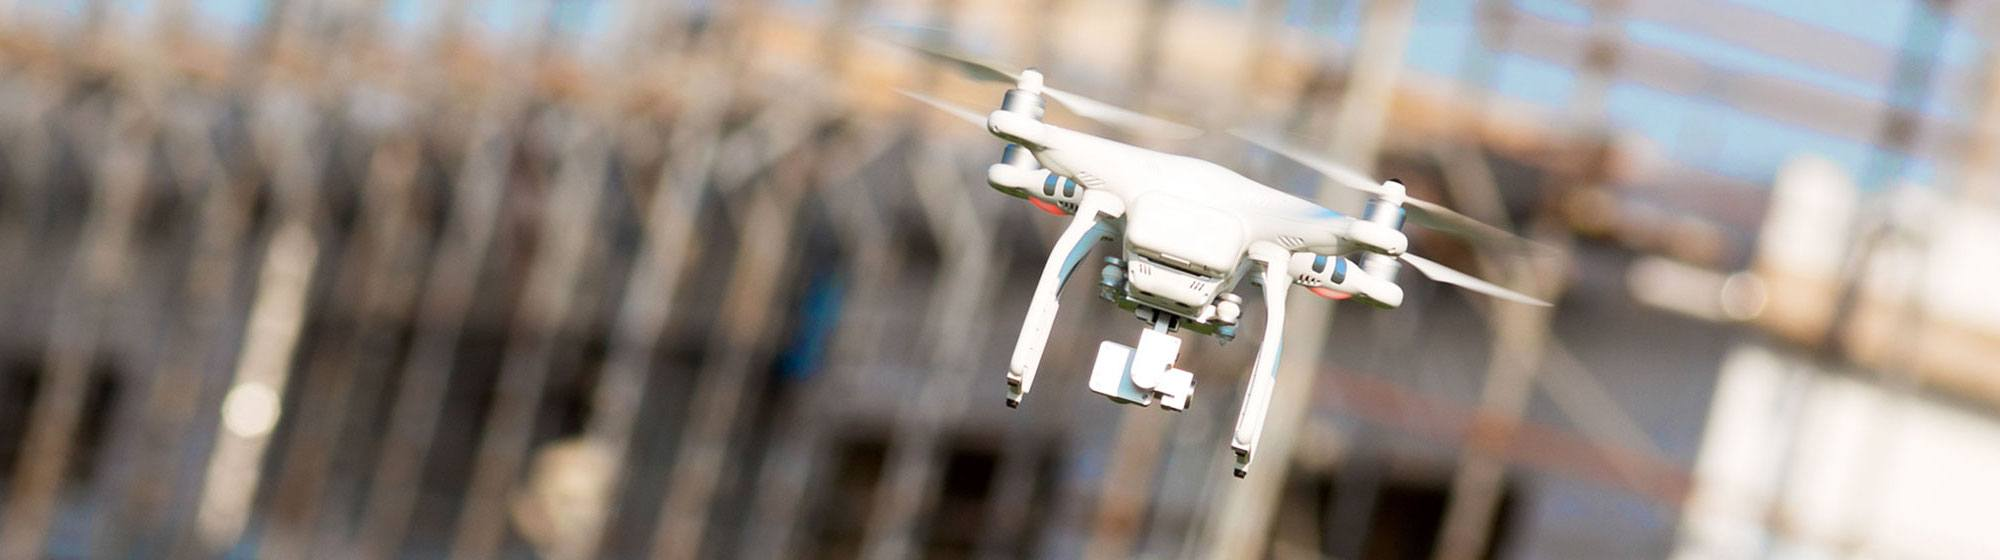 Guide to Starting a Commercial Drone Business - eBook